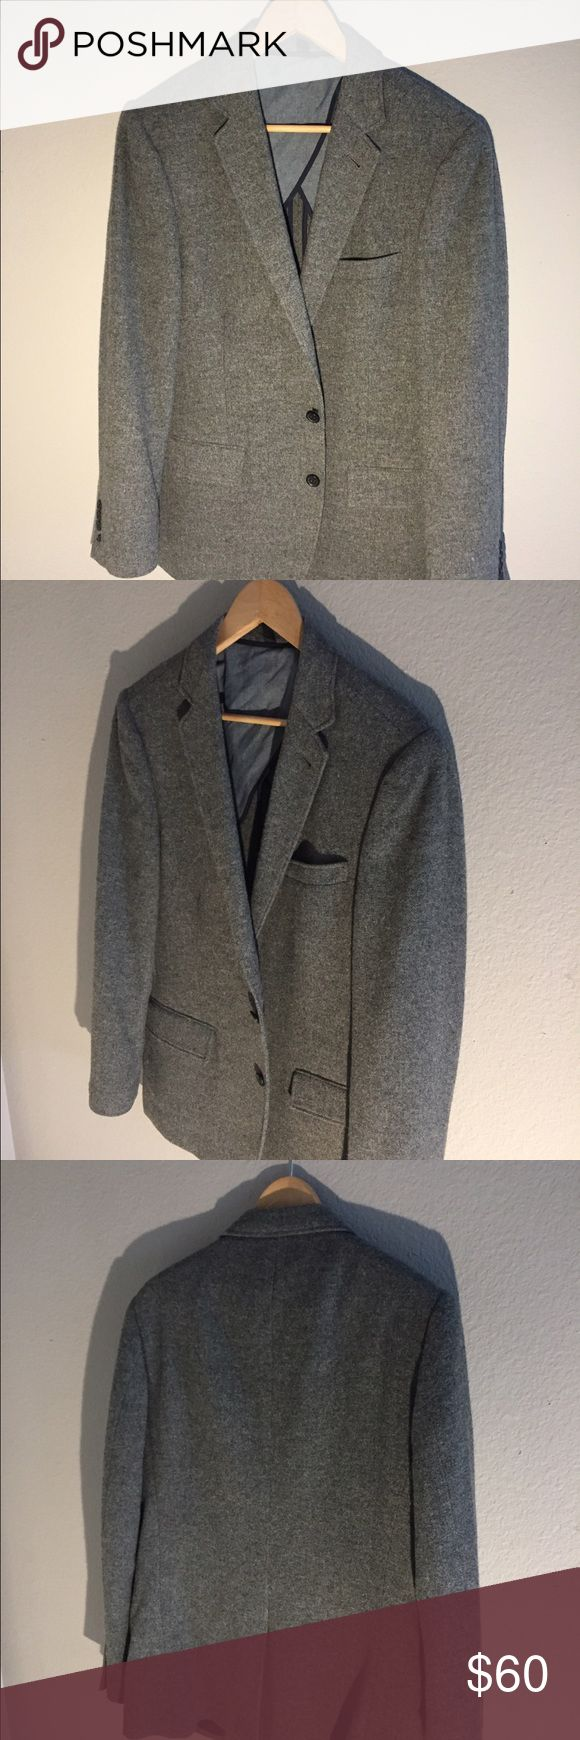 Men's J. crew twill sport coat sportscoat blazer Excellent condition sports coat for sale. Great for the upcoming spring and summer season Suits & Blazers Sport Coats & Blazers